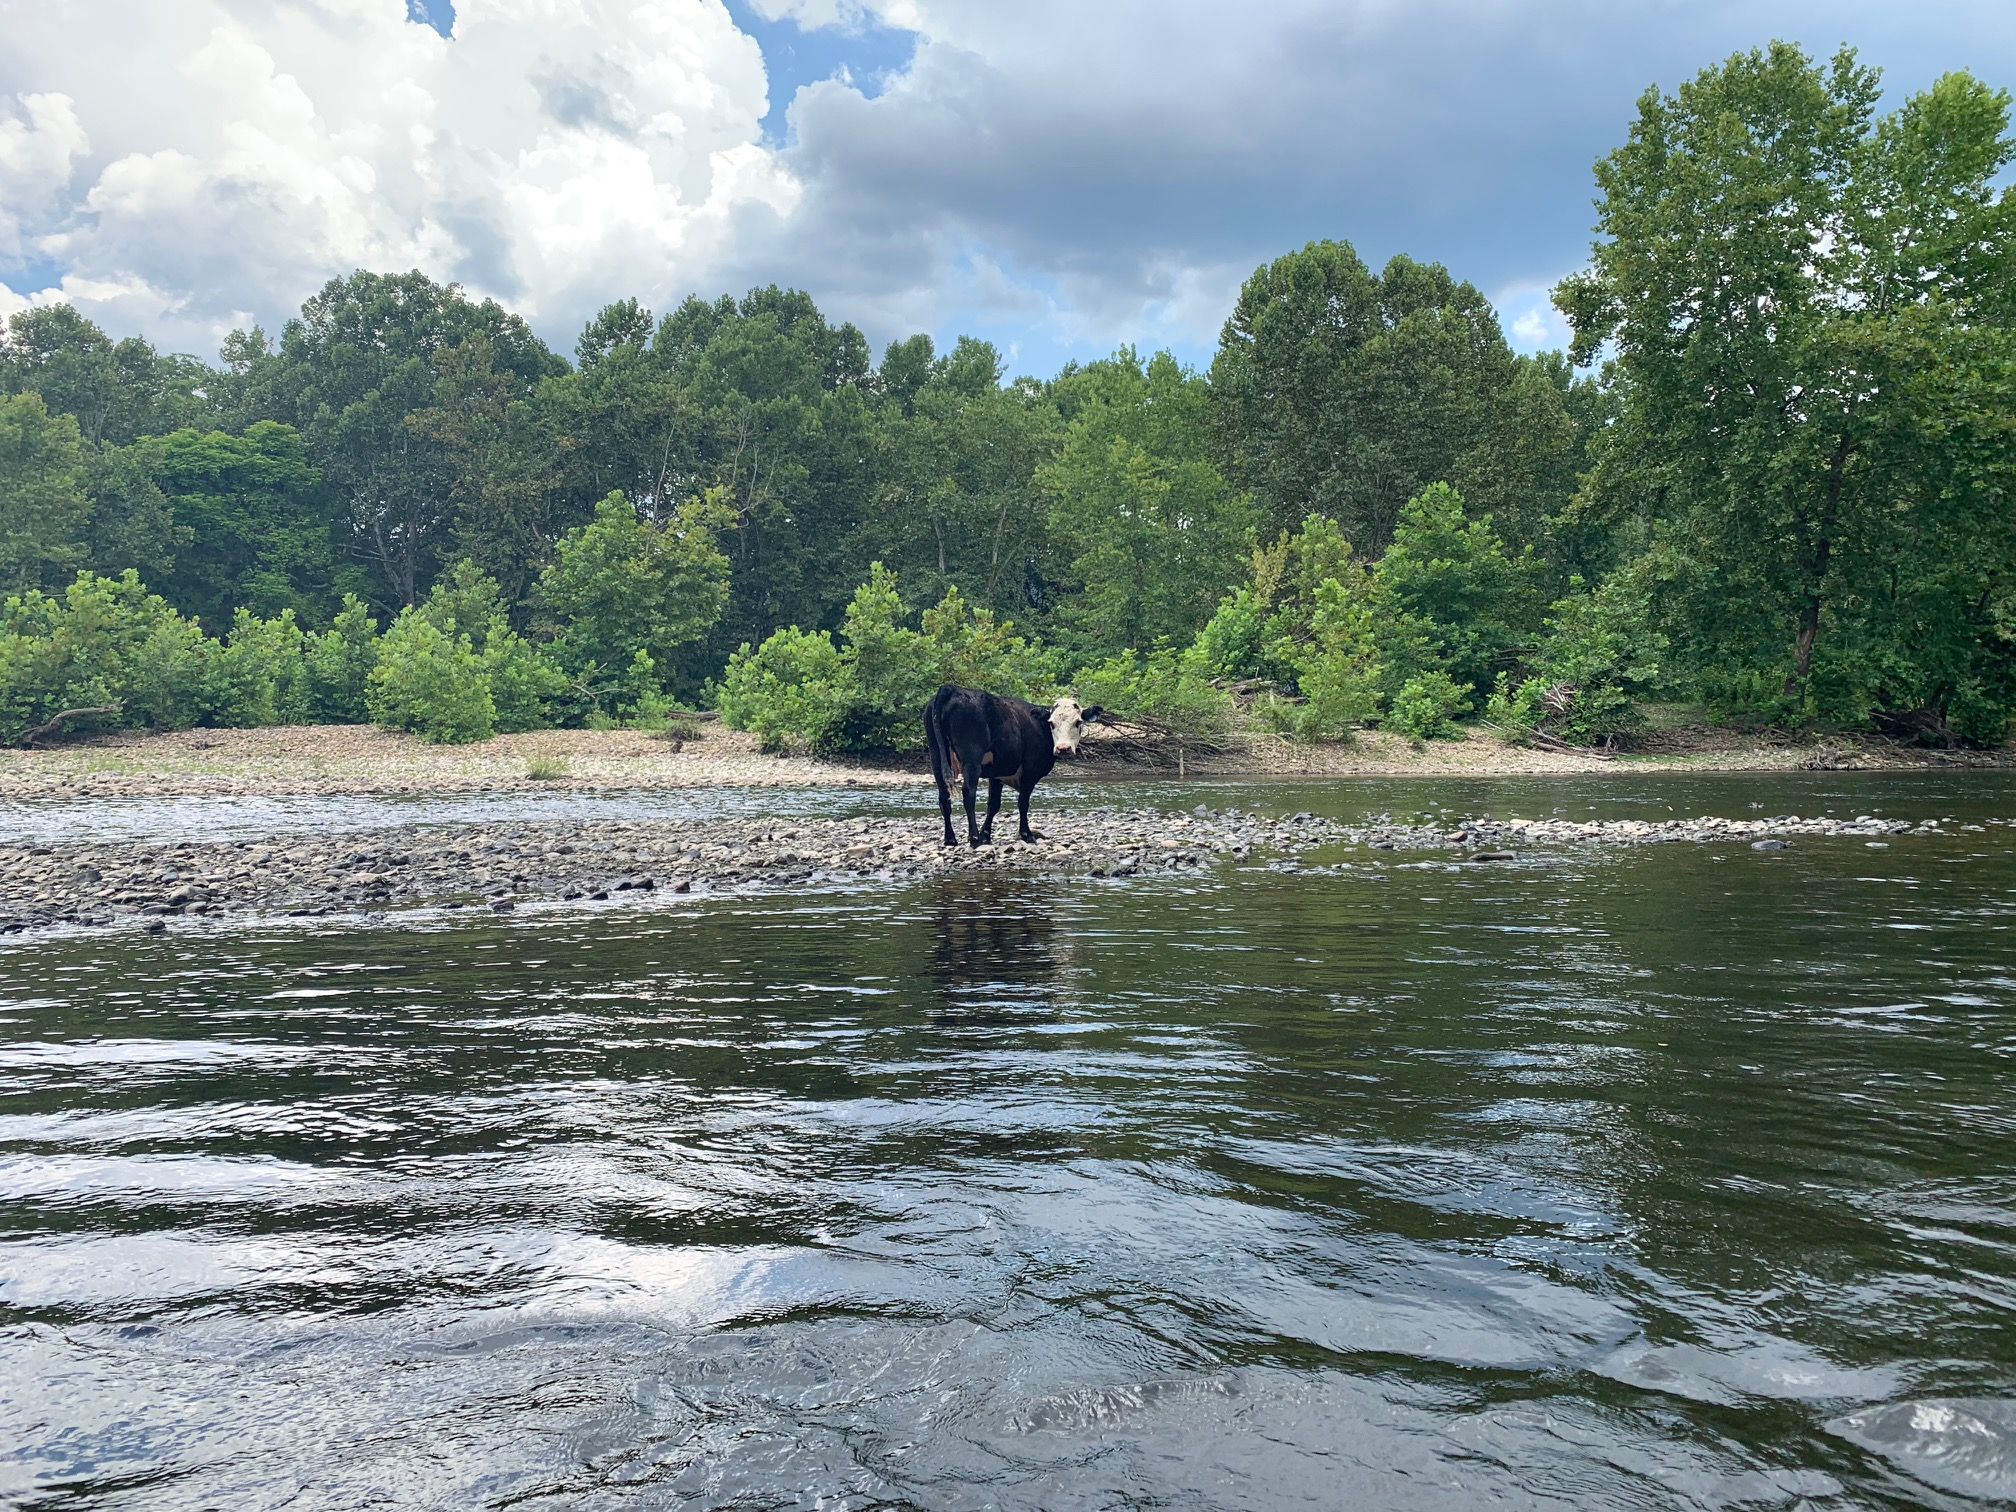 GA Committees to Take Up Clean Water Bills; We Need You!